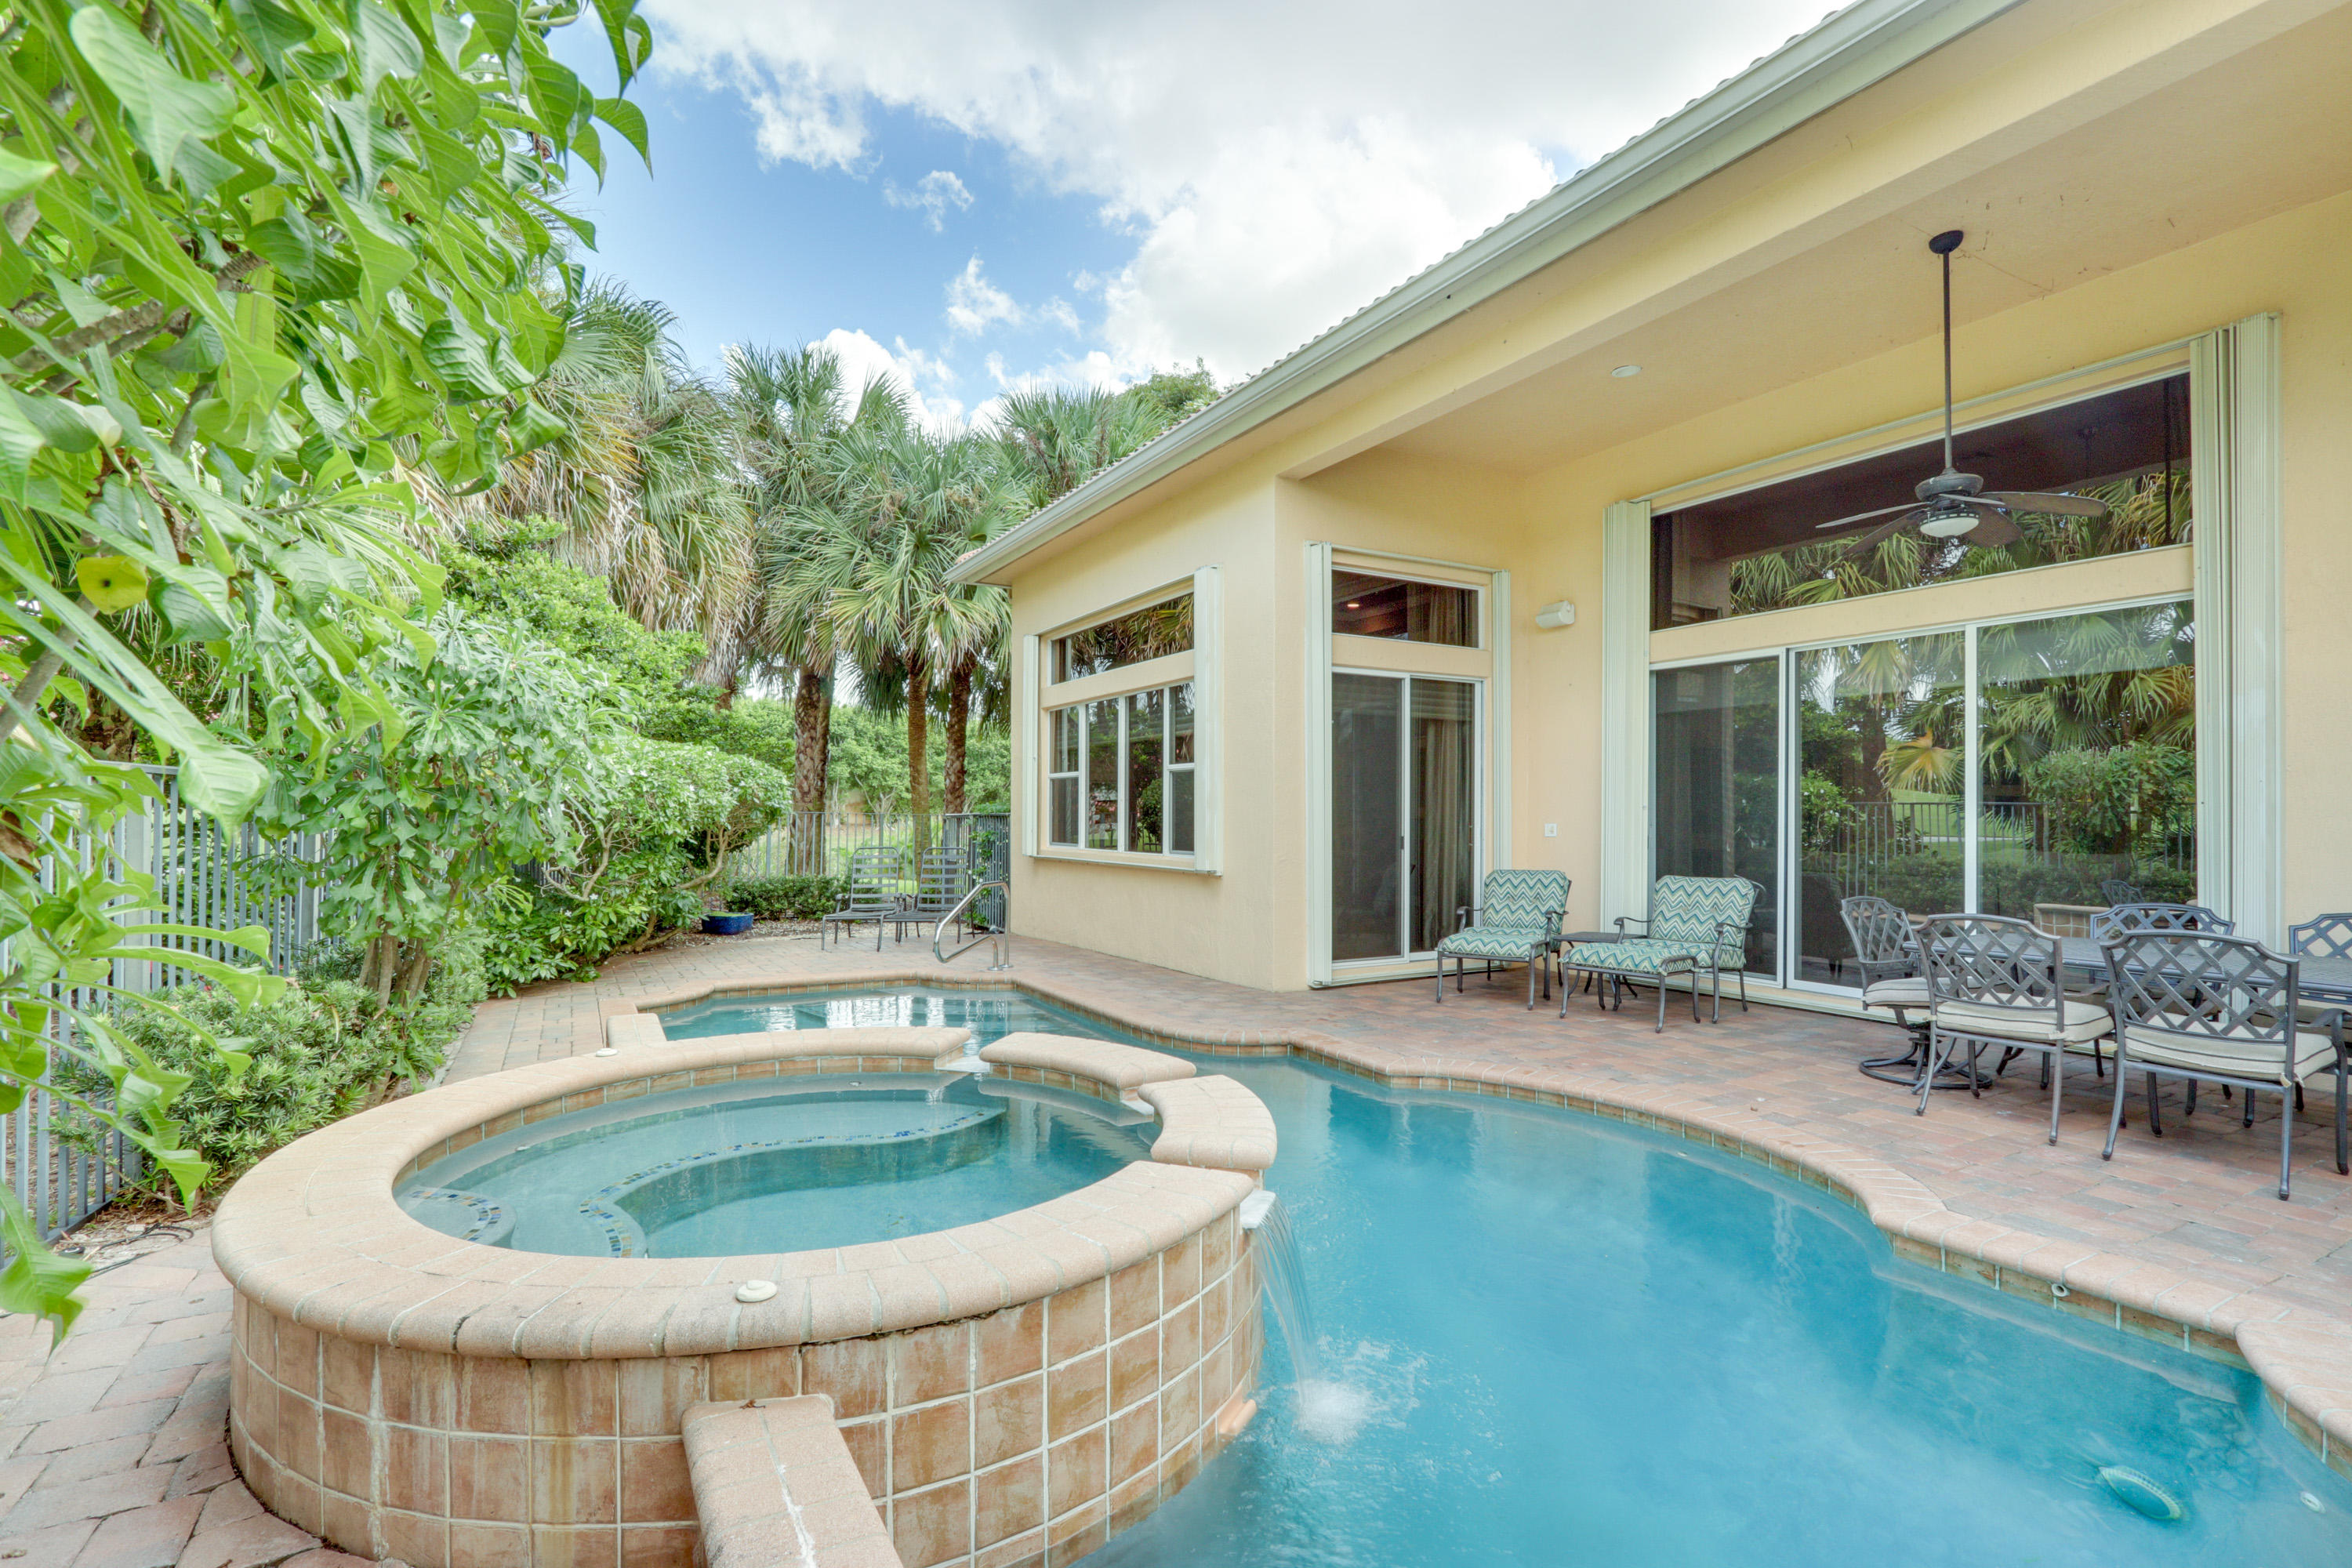 Raised Spa and Covered Patio